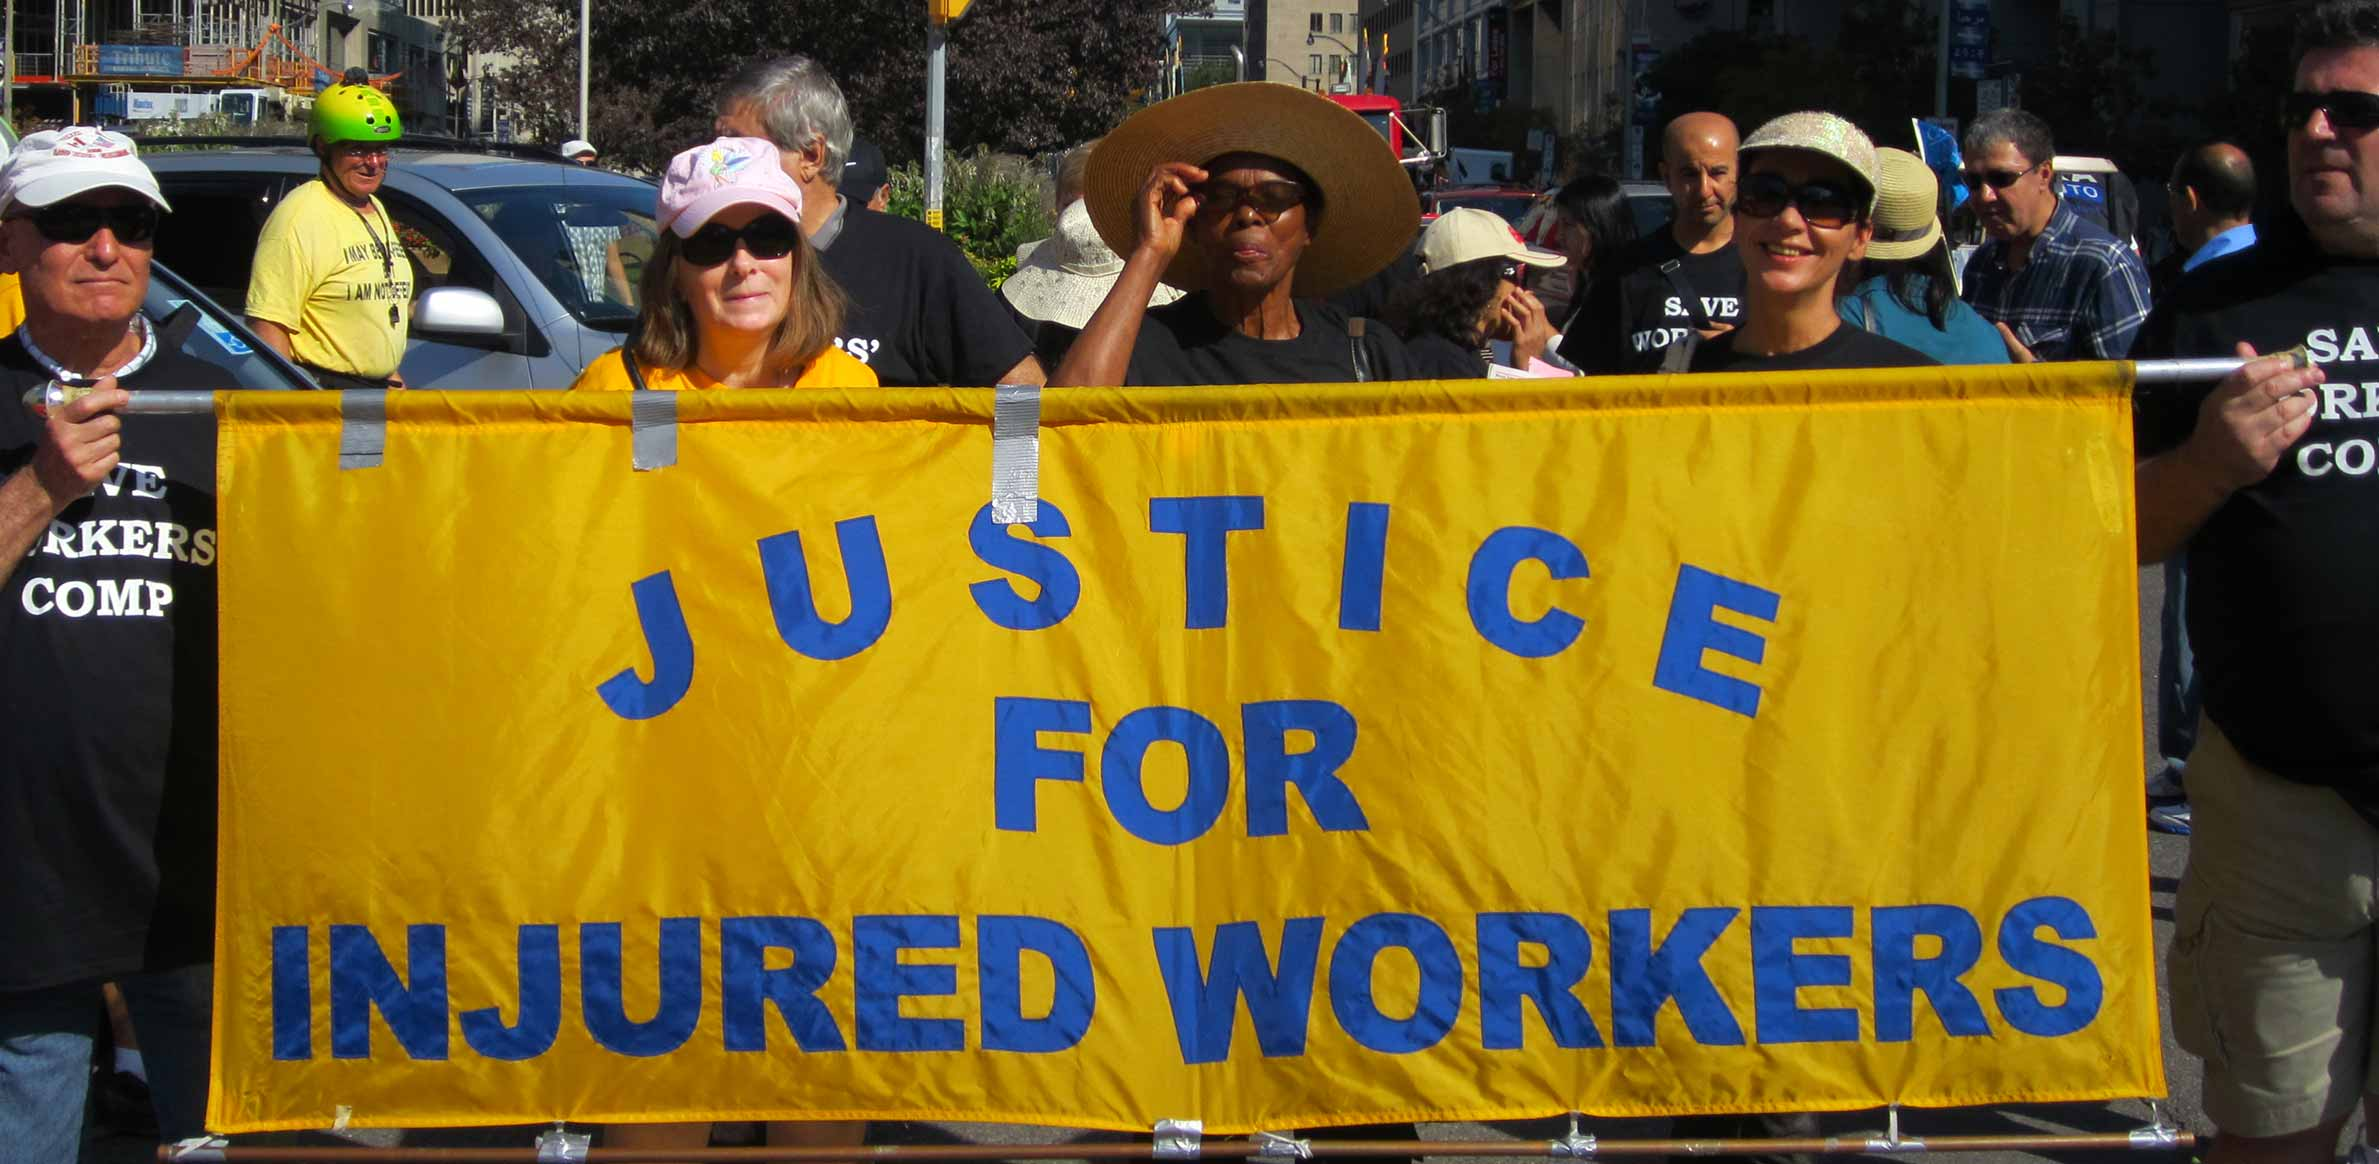 Workers hold Justice for injured workers banner on street